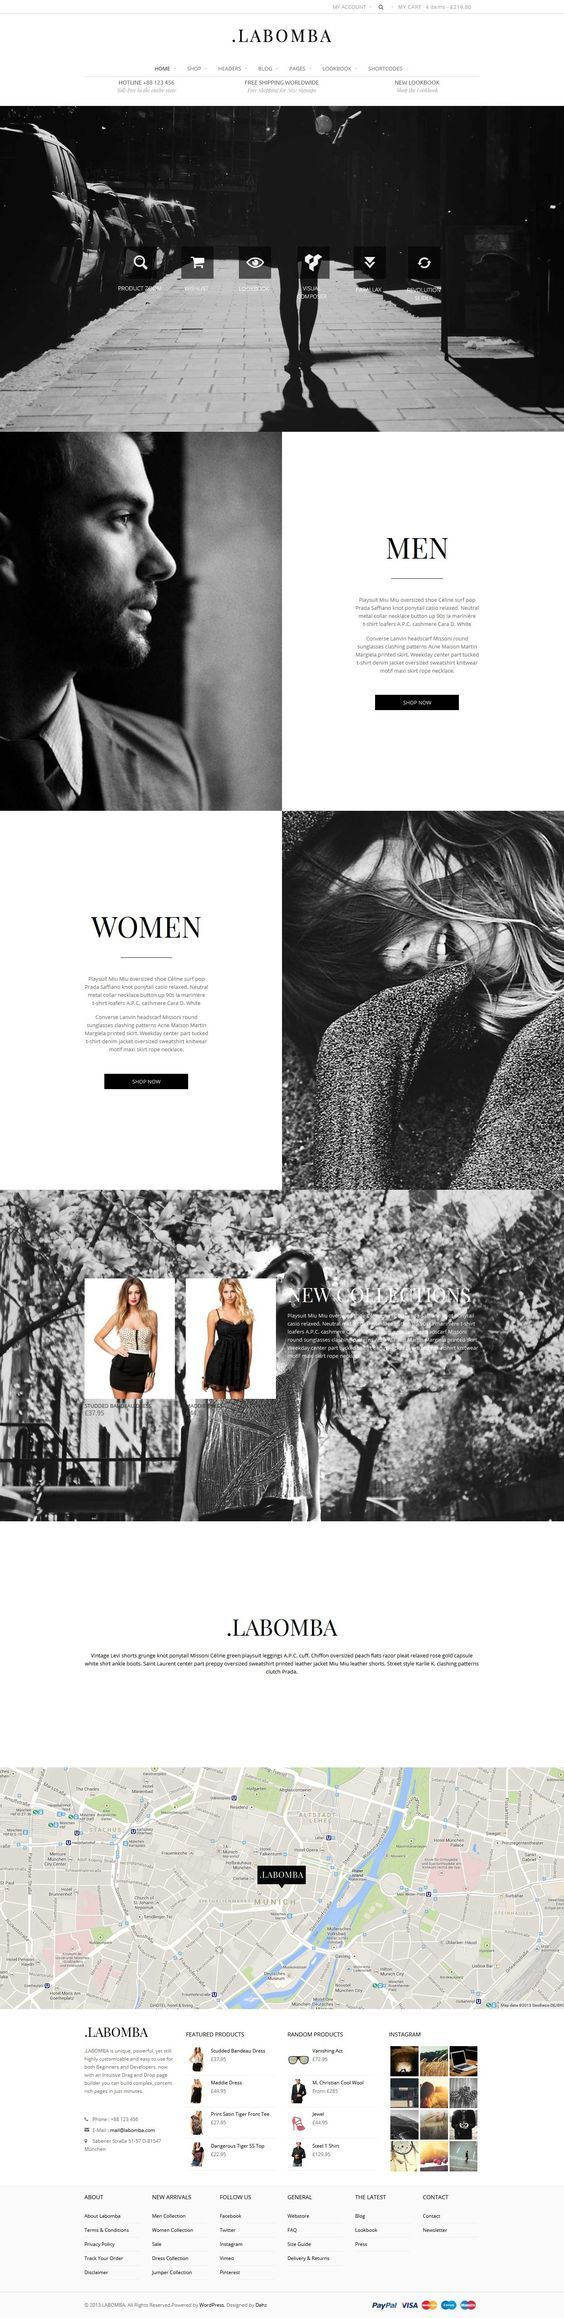 (Labomba Theme by WooComerce) I like this theme because it is sleek and classy, which is perfect for a clothing website. With the features it has, it provides everything needed for a clothing store's online presence. I think that this could be made for another business as well and does a good job of keeping things orderly, classy, and user-friendly.: